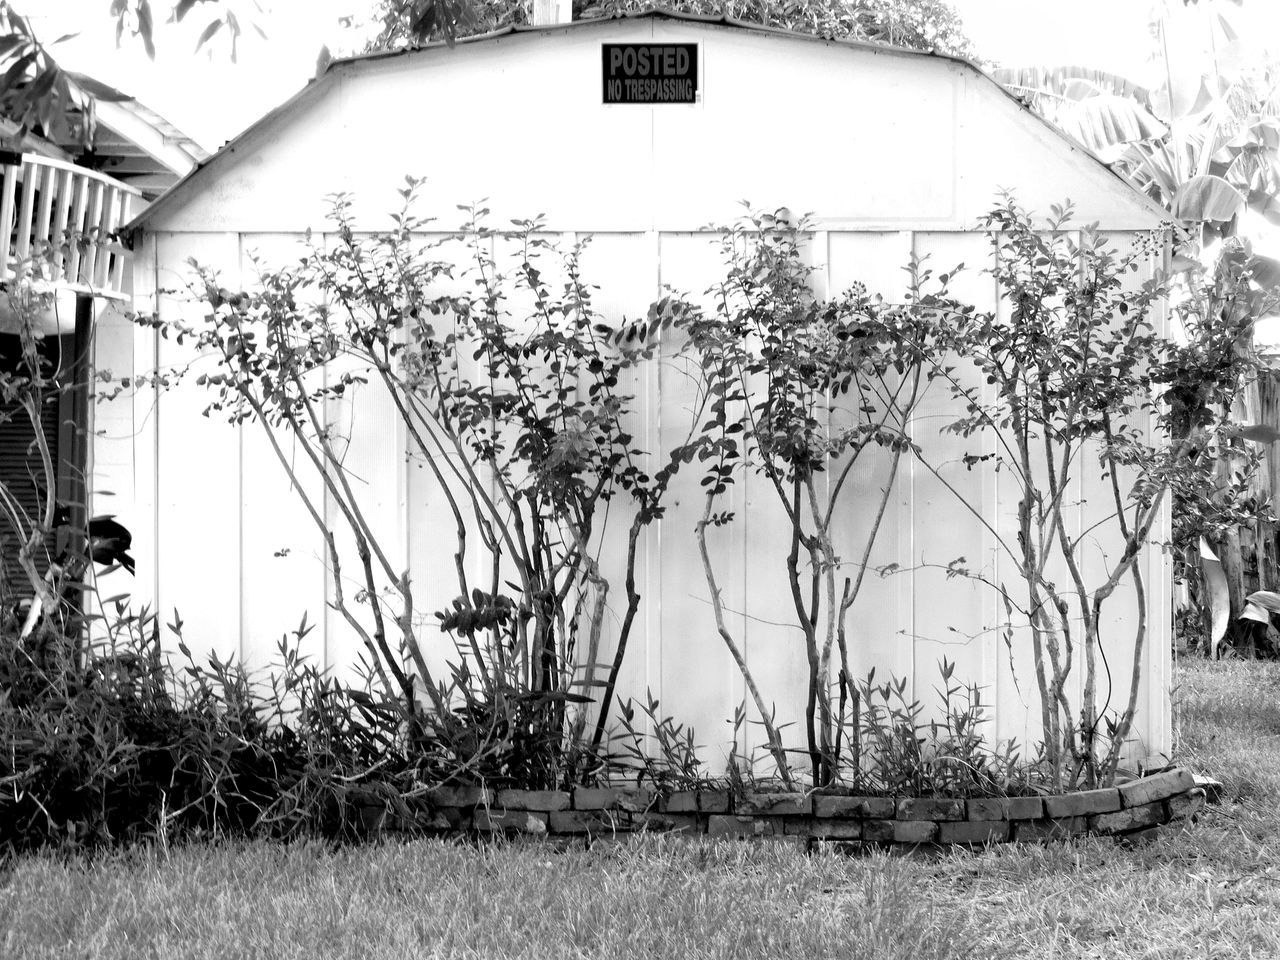 Monochrome Photography Outdoors Nature Florida Untold Stories Darkness And Light Remote Random Acts Of Photography Blackandwhite Florida Nature Floridaphotographer Beauty In Nature Built Structure Noir Et Blanc Notes From The Underground No Trespassing Light And Shadow Growth